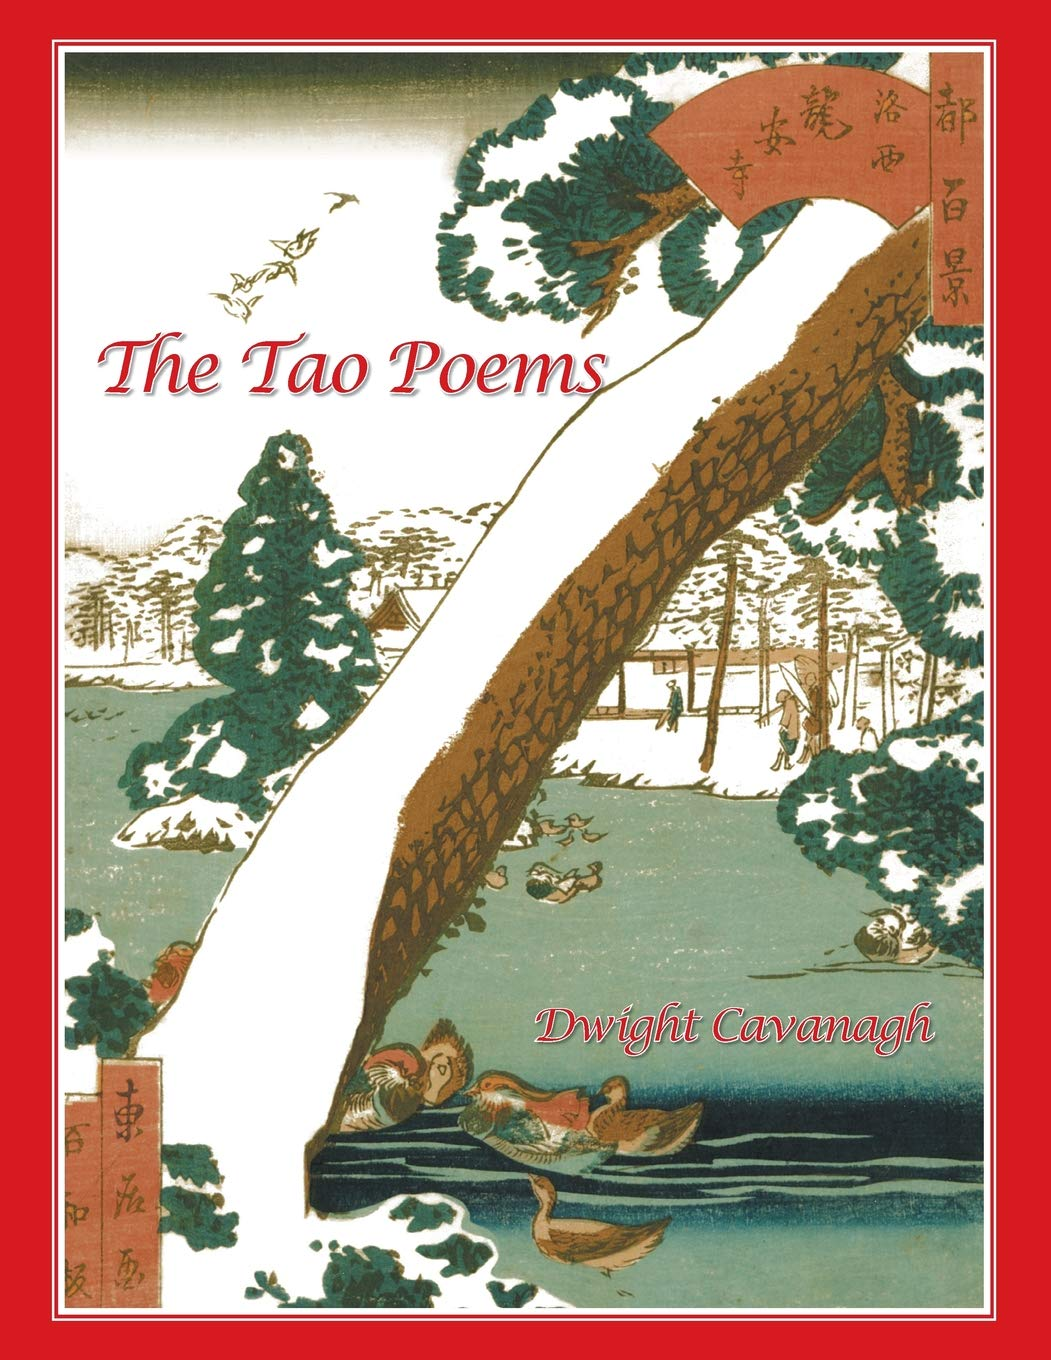 THE TAO POEMS